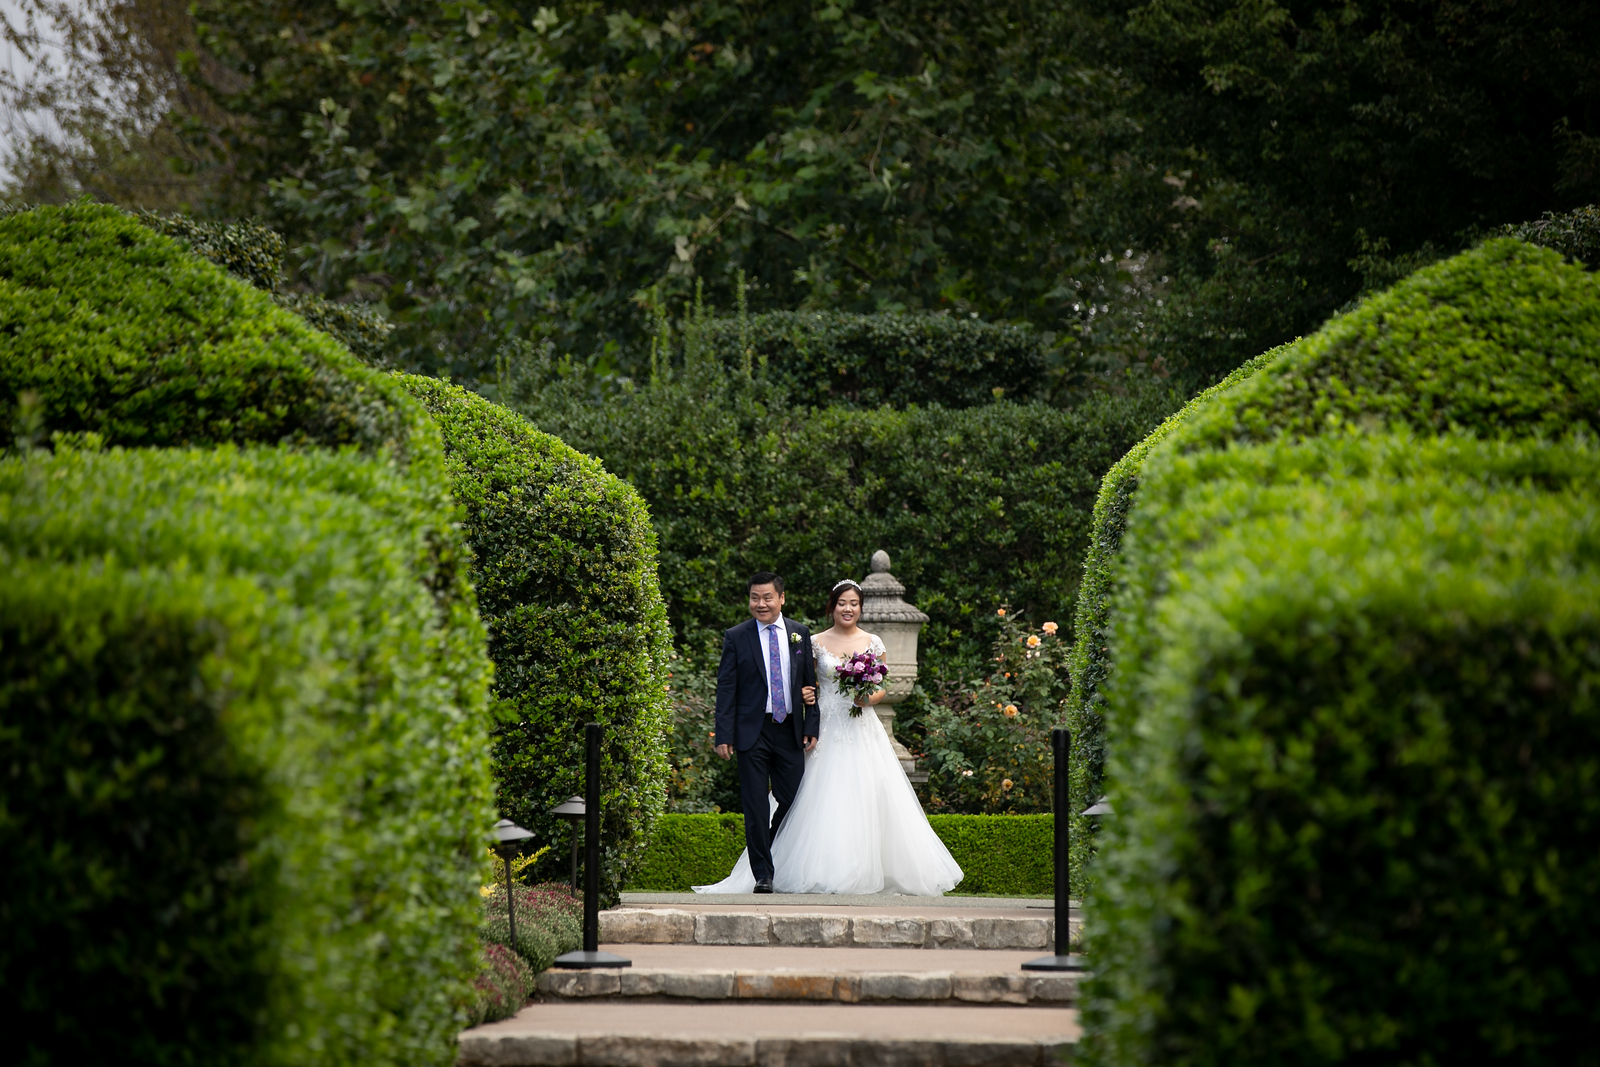 a man walks his daughter down the aisle through green hedges and gardens